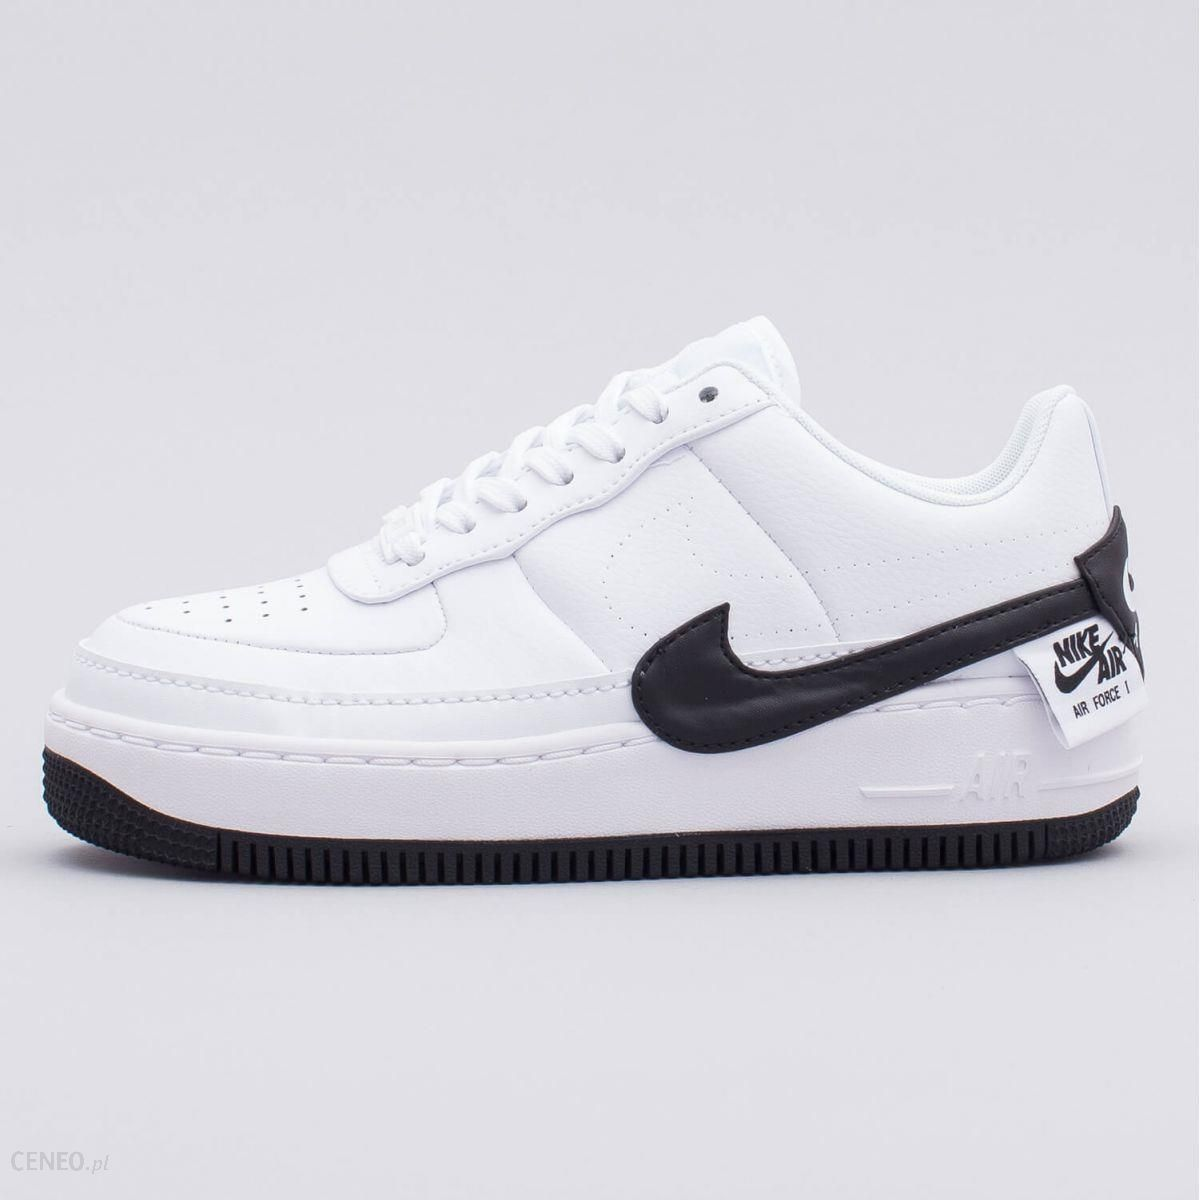 WMNS AIR FORCE 1 JESTER XX AO1220 102